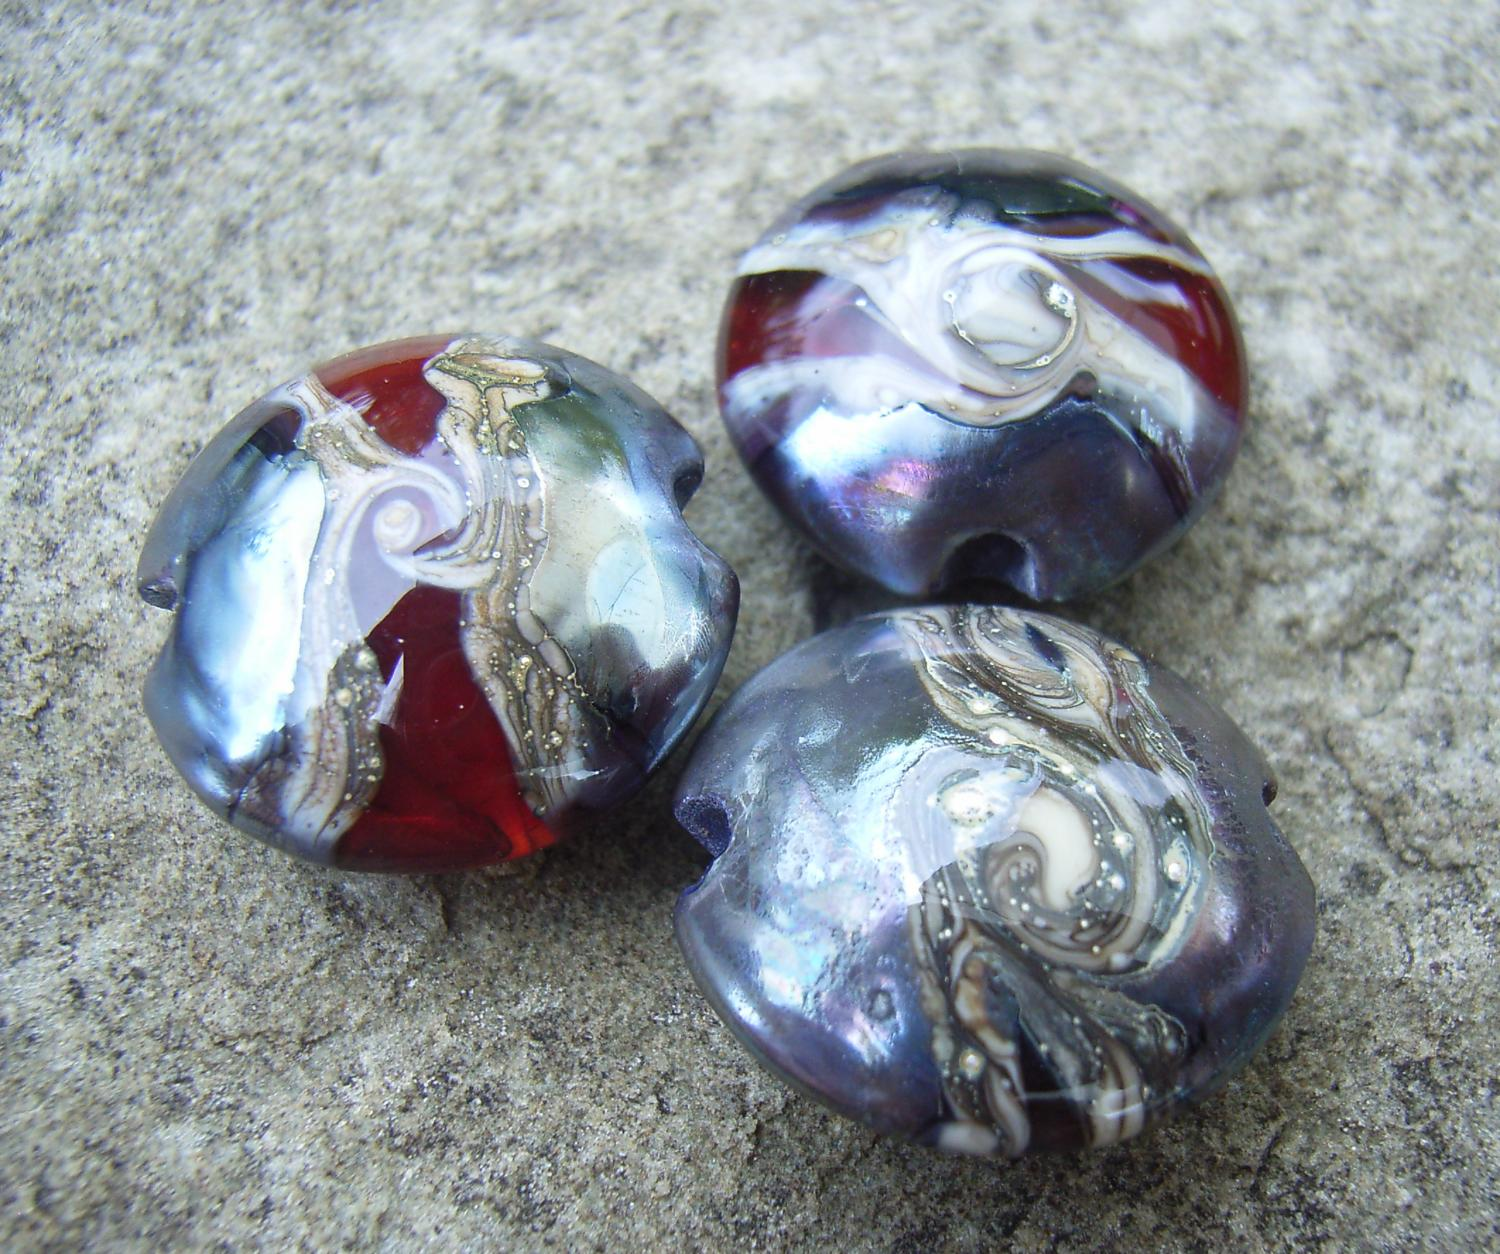 Special Nebula Swirl 18mm Lentil Handmade Artisan Glass Lampwork Beads - By the Bead, (Made to Order) 2